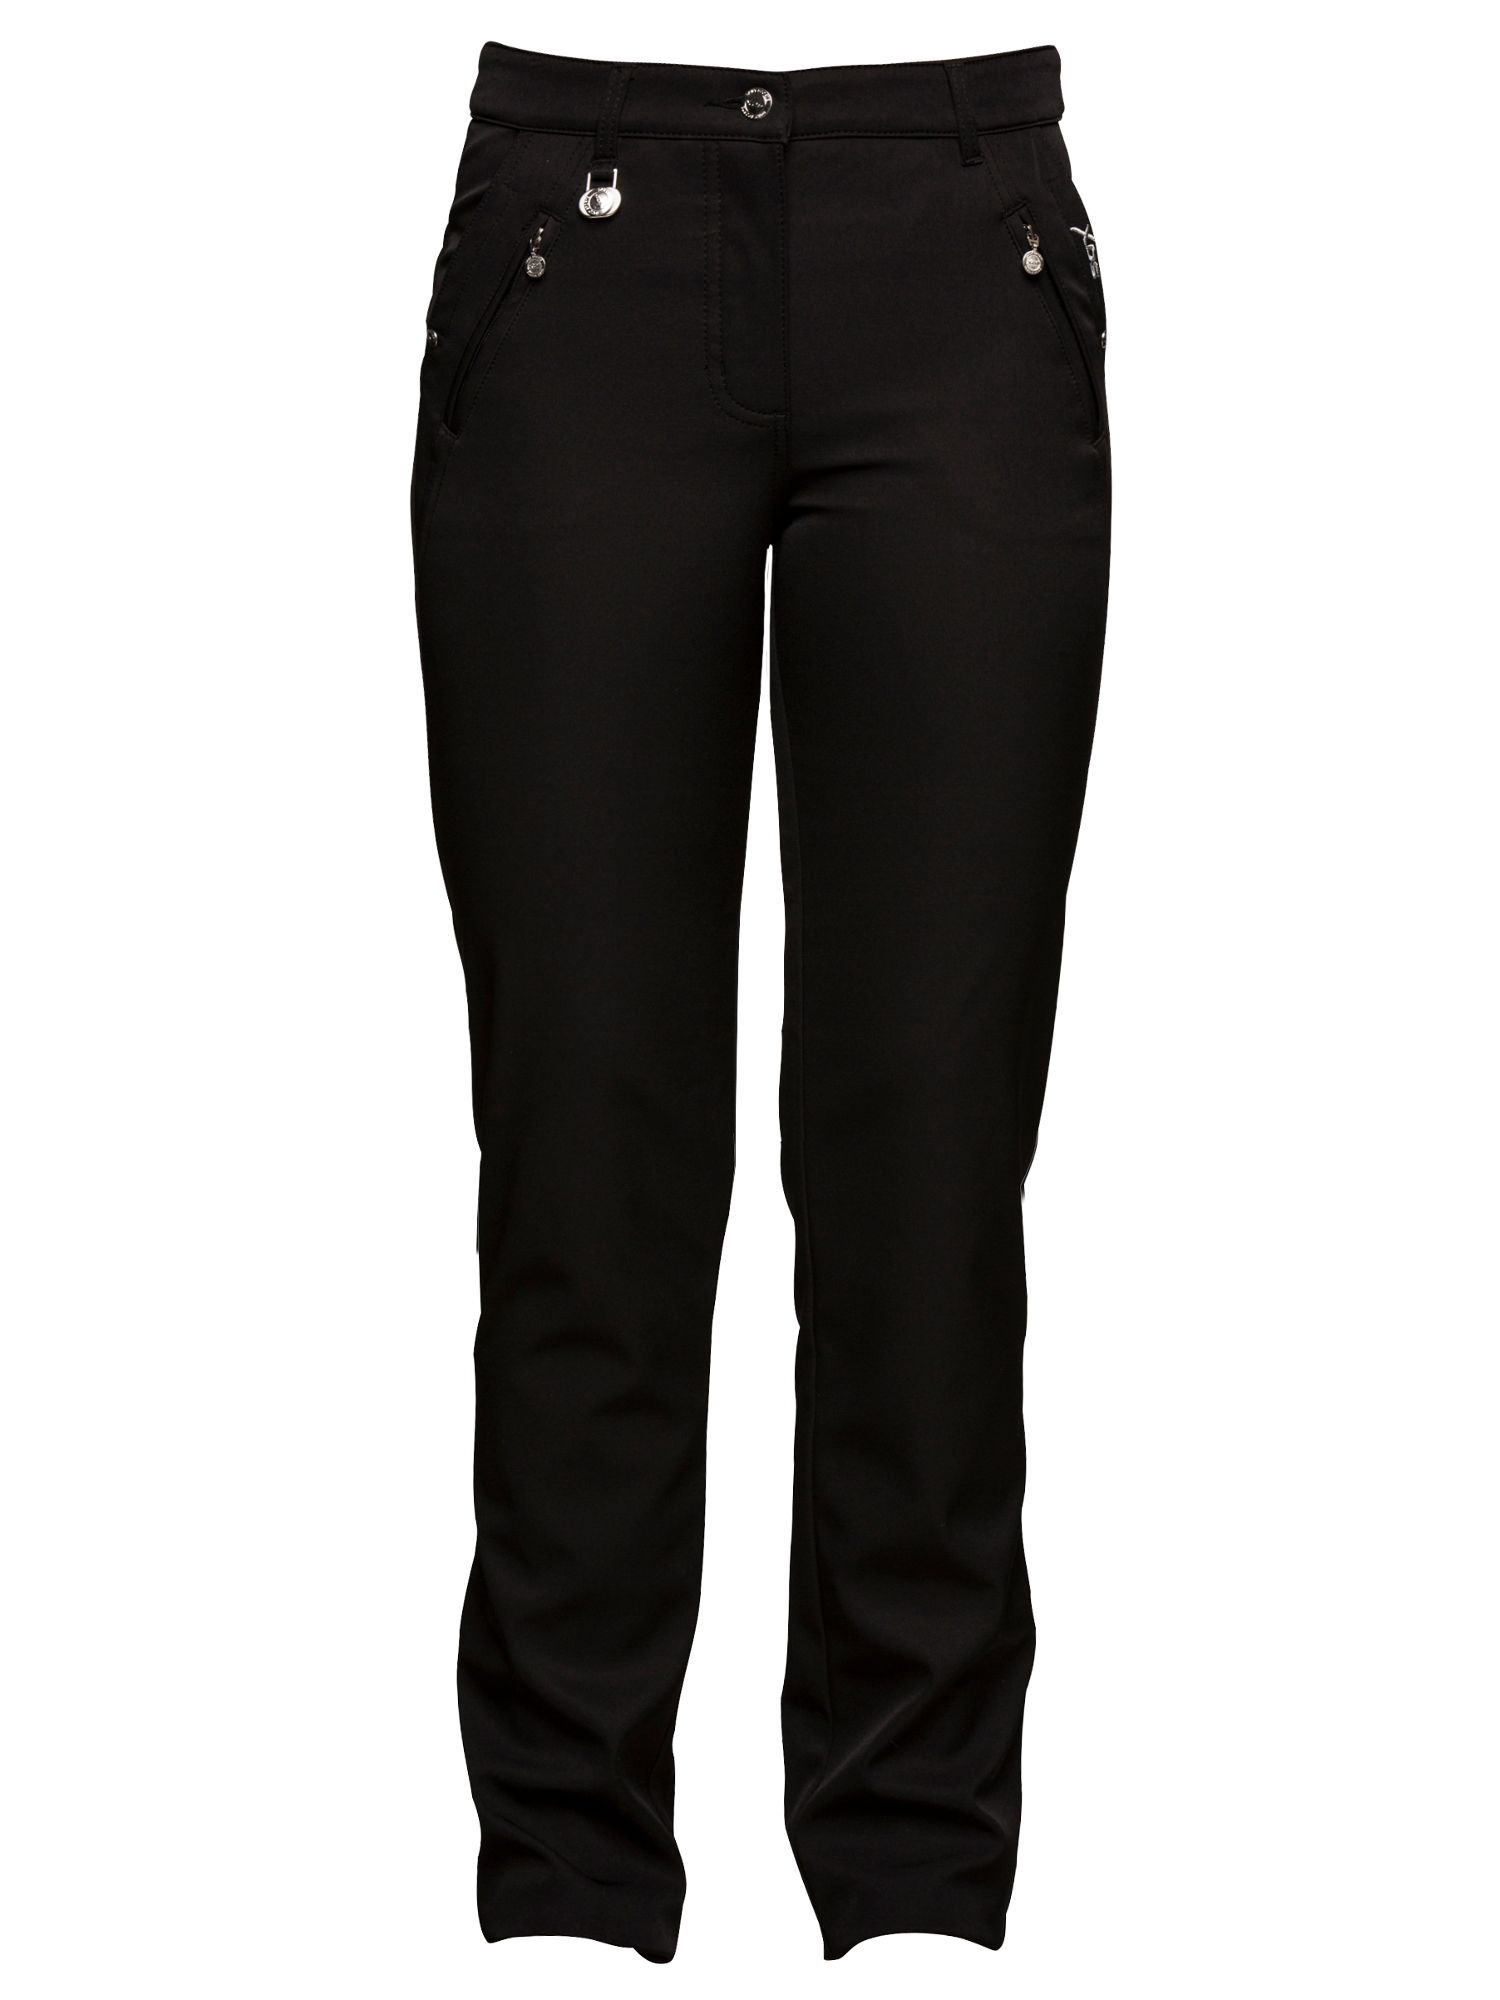 Daily Sports Irene Trousers, Black